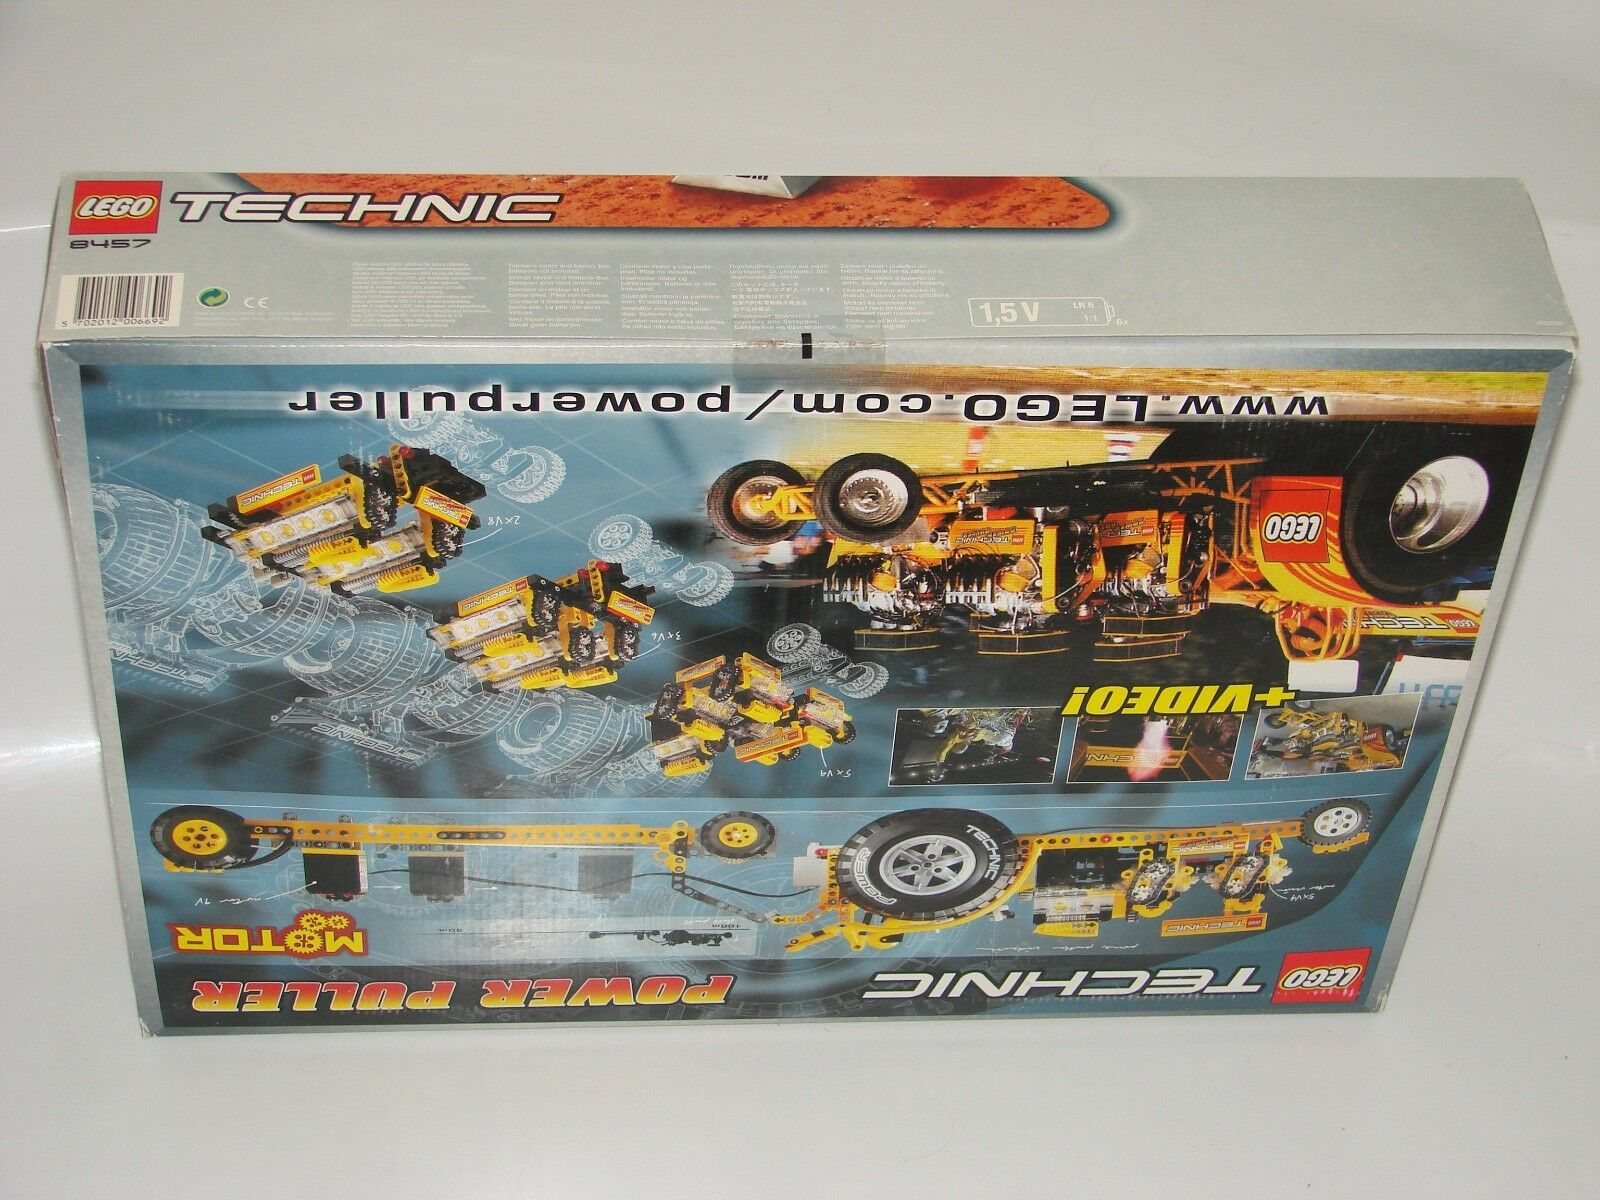 LEGO® TECHNIC TECHNIC TECHNIC 8457 Power Puller Neu OVP _New MISB NRFB box condition s pictures 642ab0